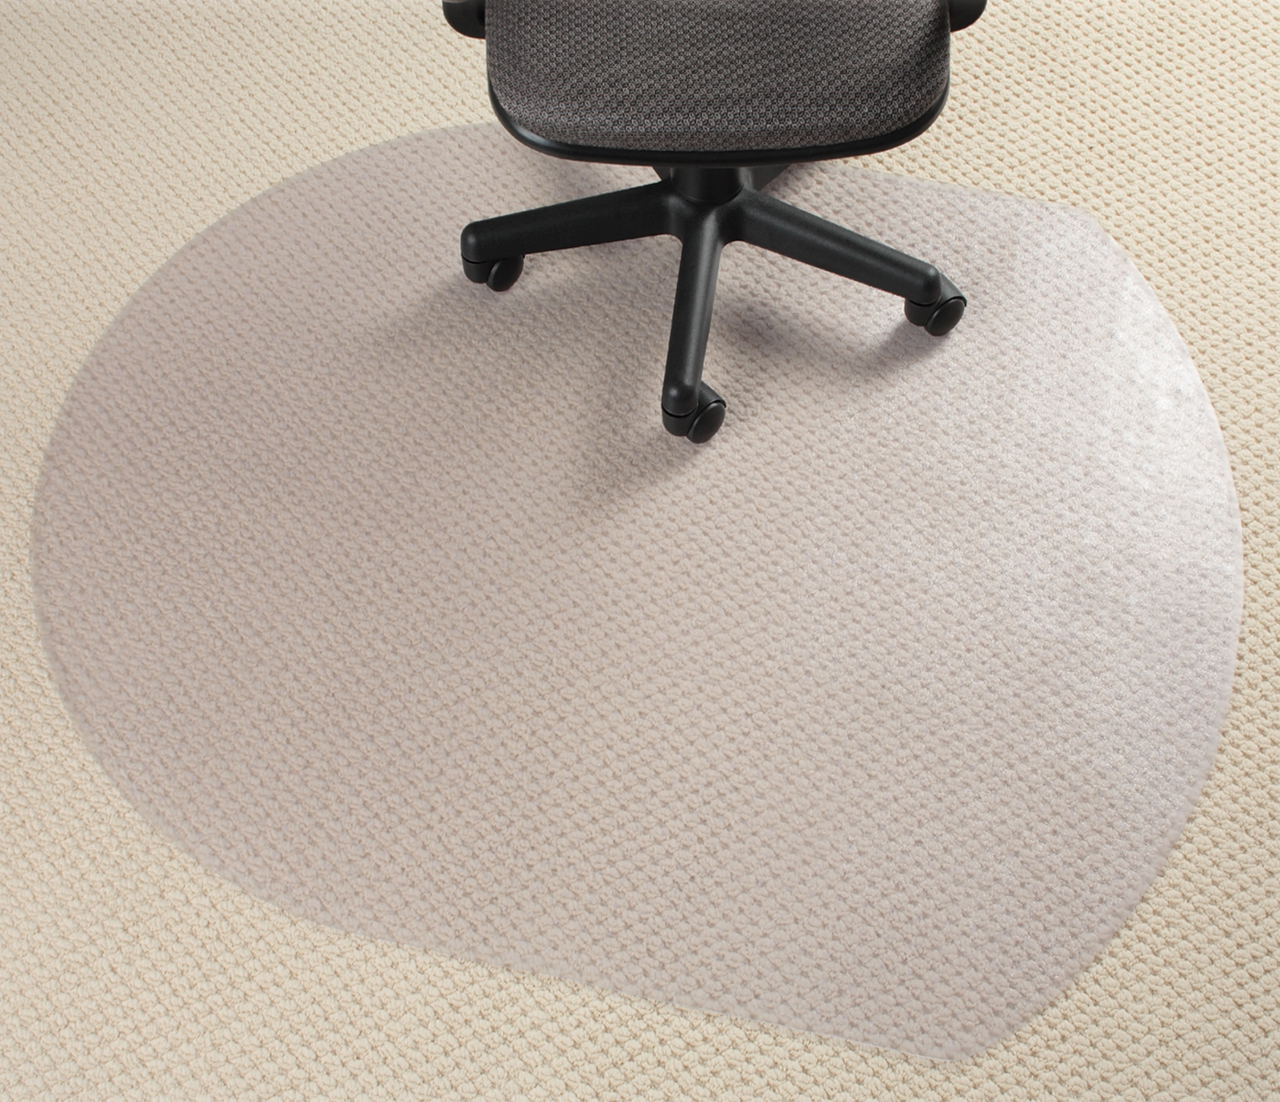 Glass Chair Mat Contour Mats For Office 4th Best Selling